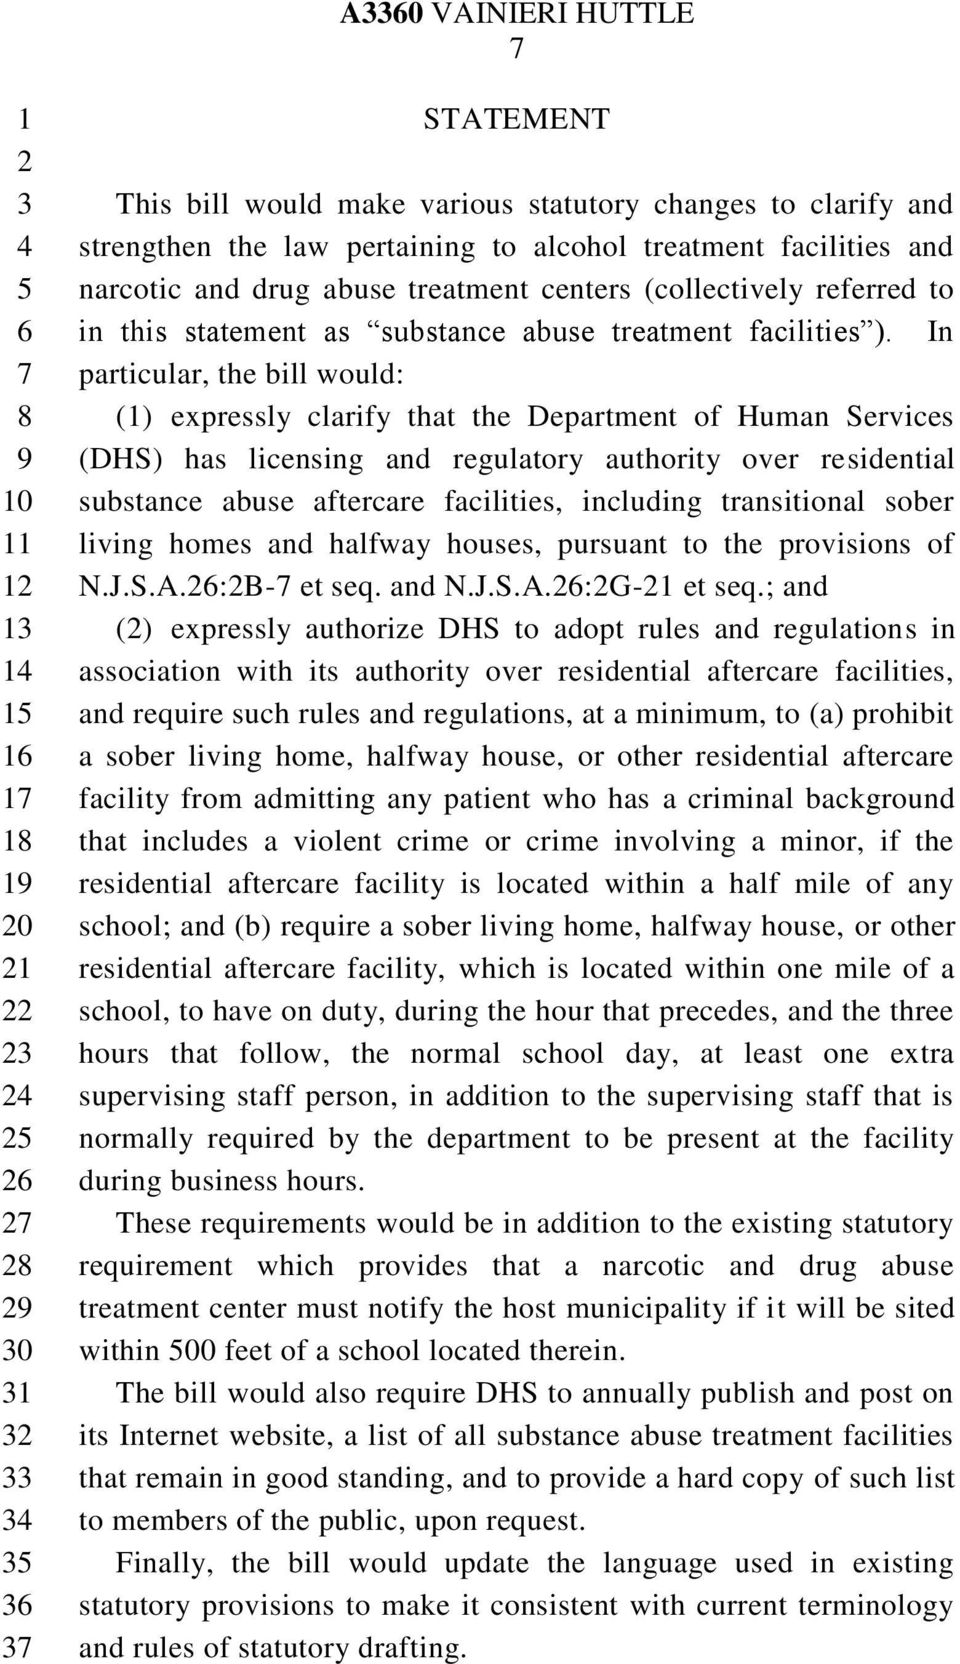 In particular, the bill would: () expressly clarify that the Department of Human Services (DHS) has licensing and regulatory authority over residential substance abuse aftercare facilities, including